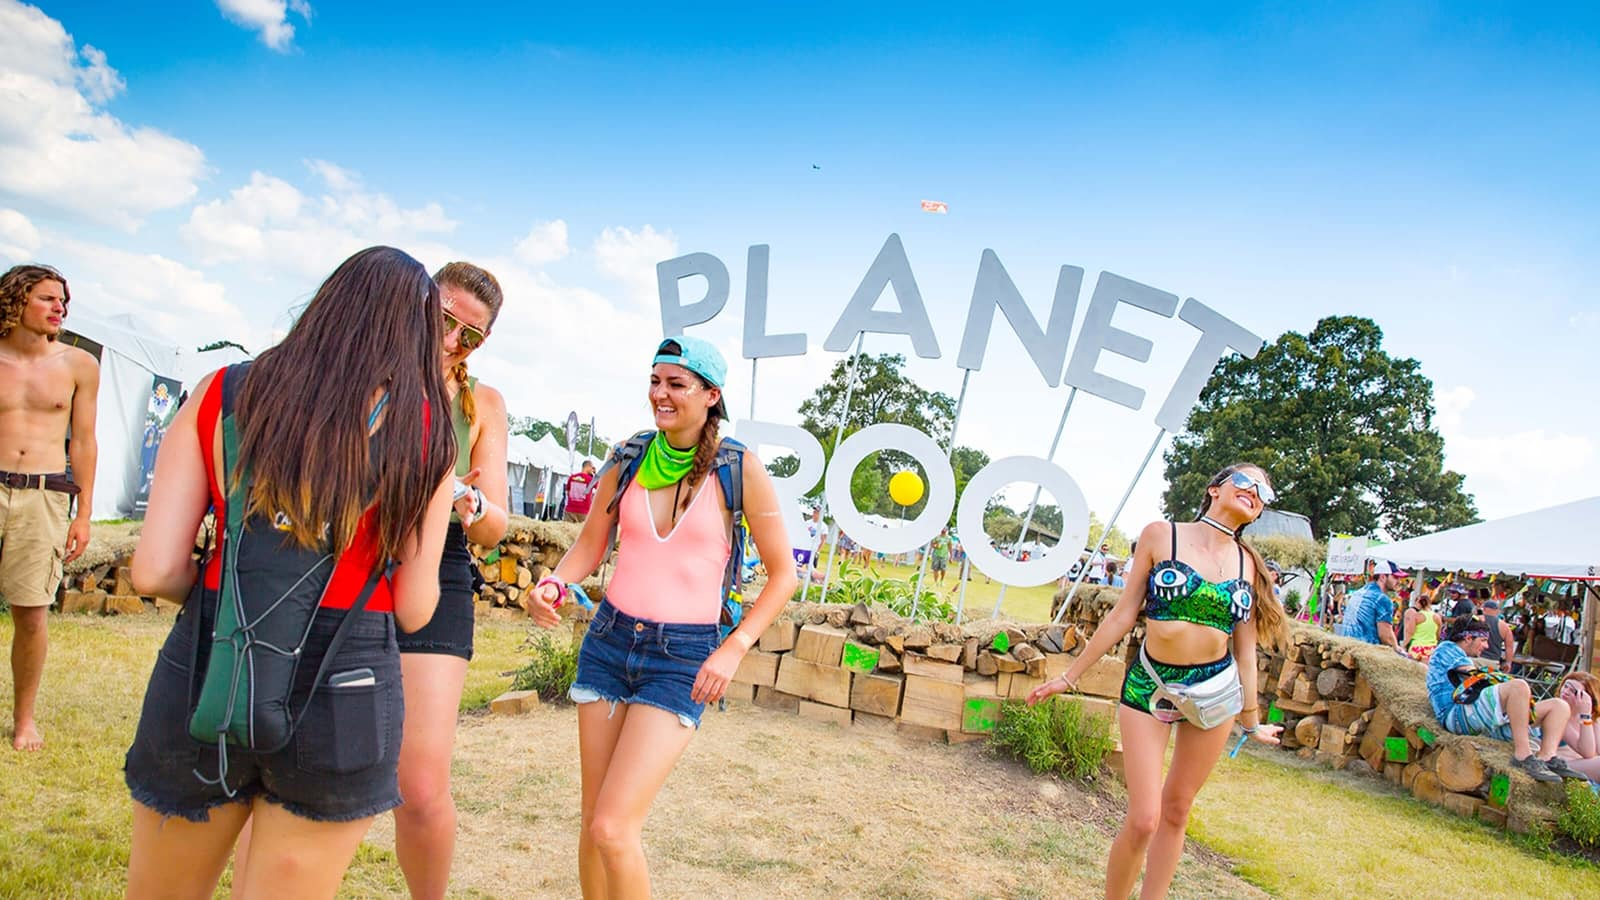 Bonnaroo Bound: 6 Must-Pack Items for Music Festivals